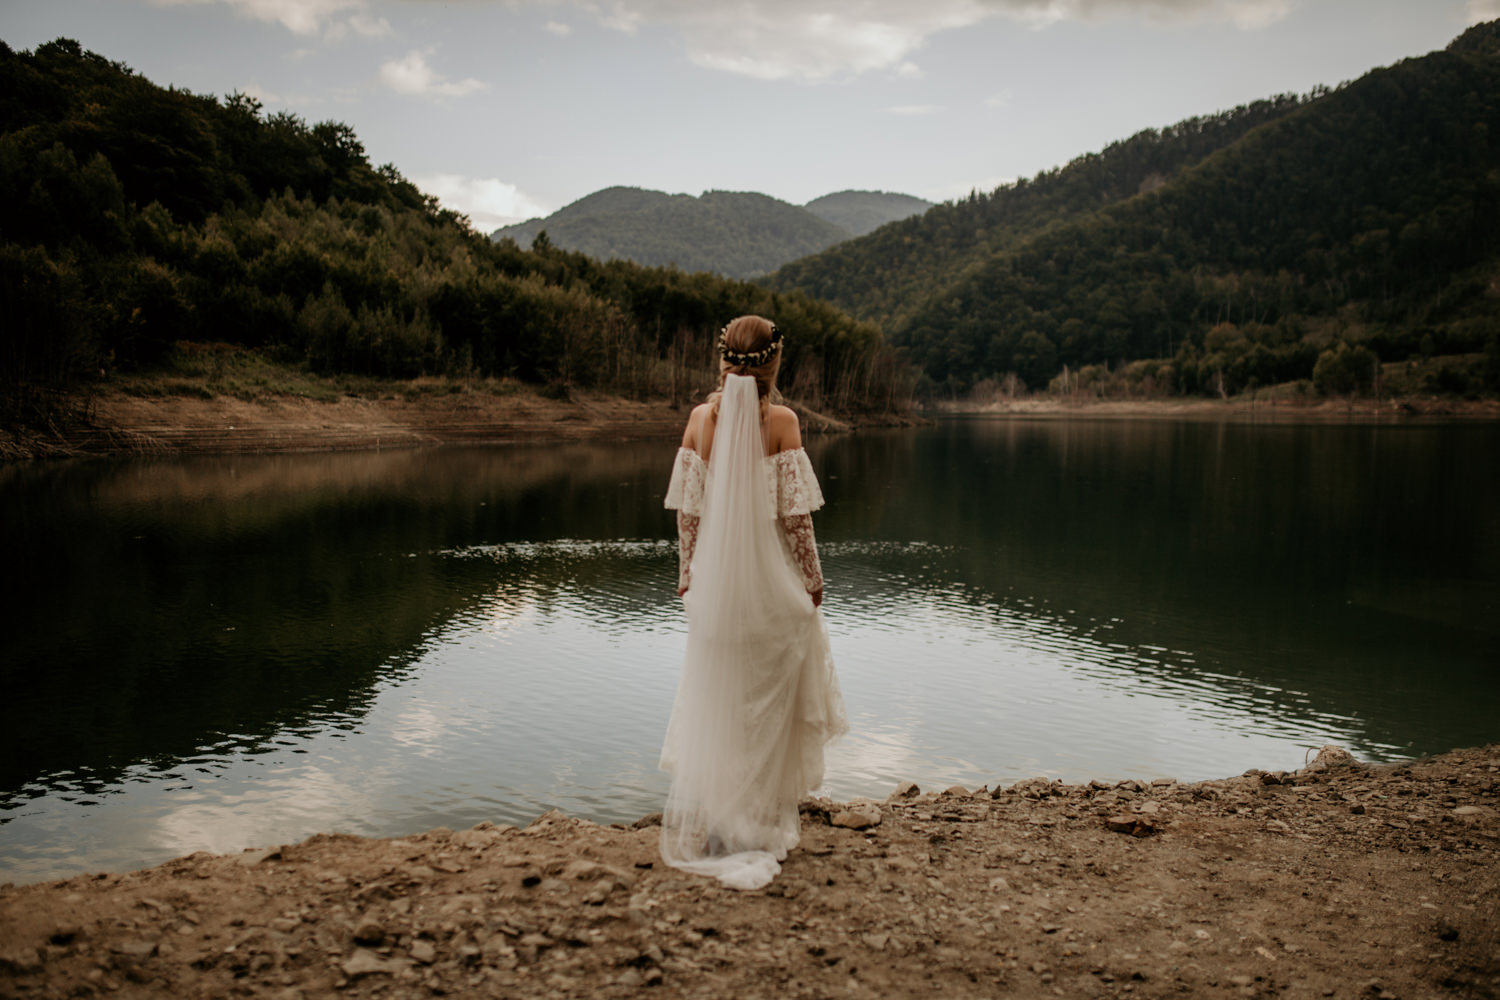 bride on the shore of a lake in the Carpathians mountains in Transylvania